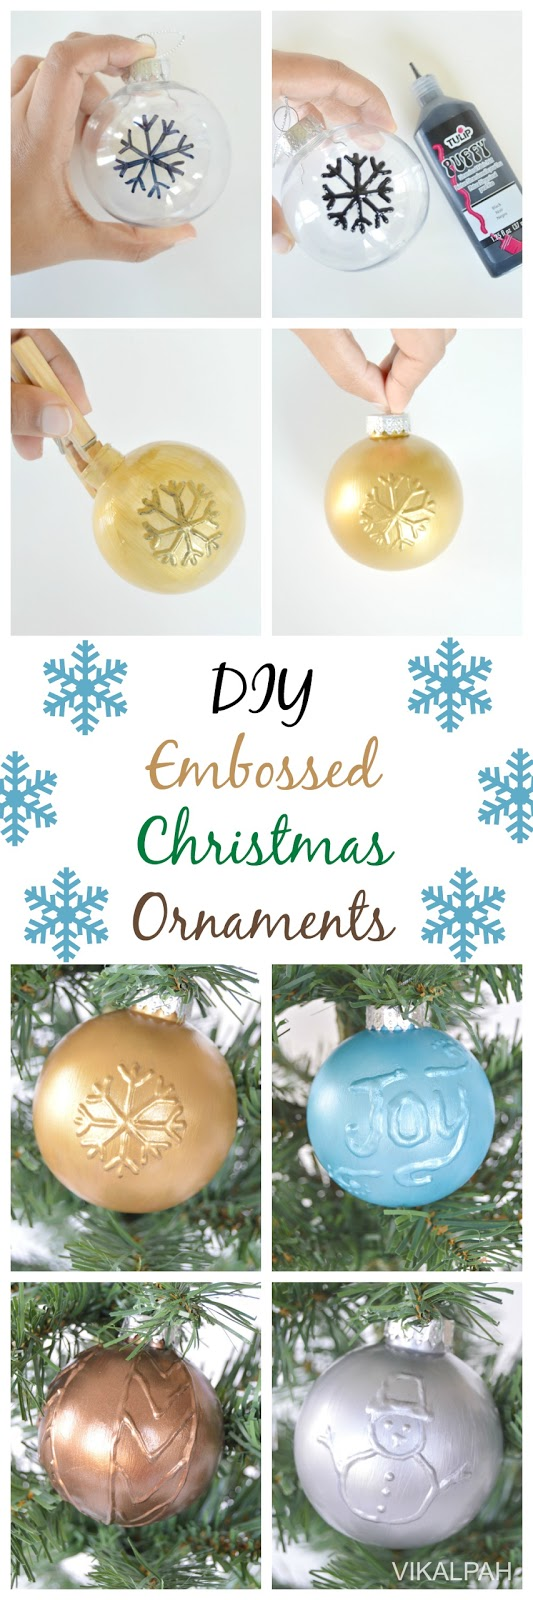 Vikalpah: DIY Embossed Christmas Ornaments